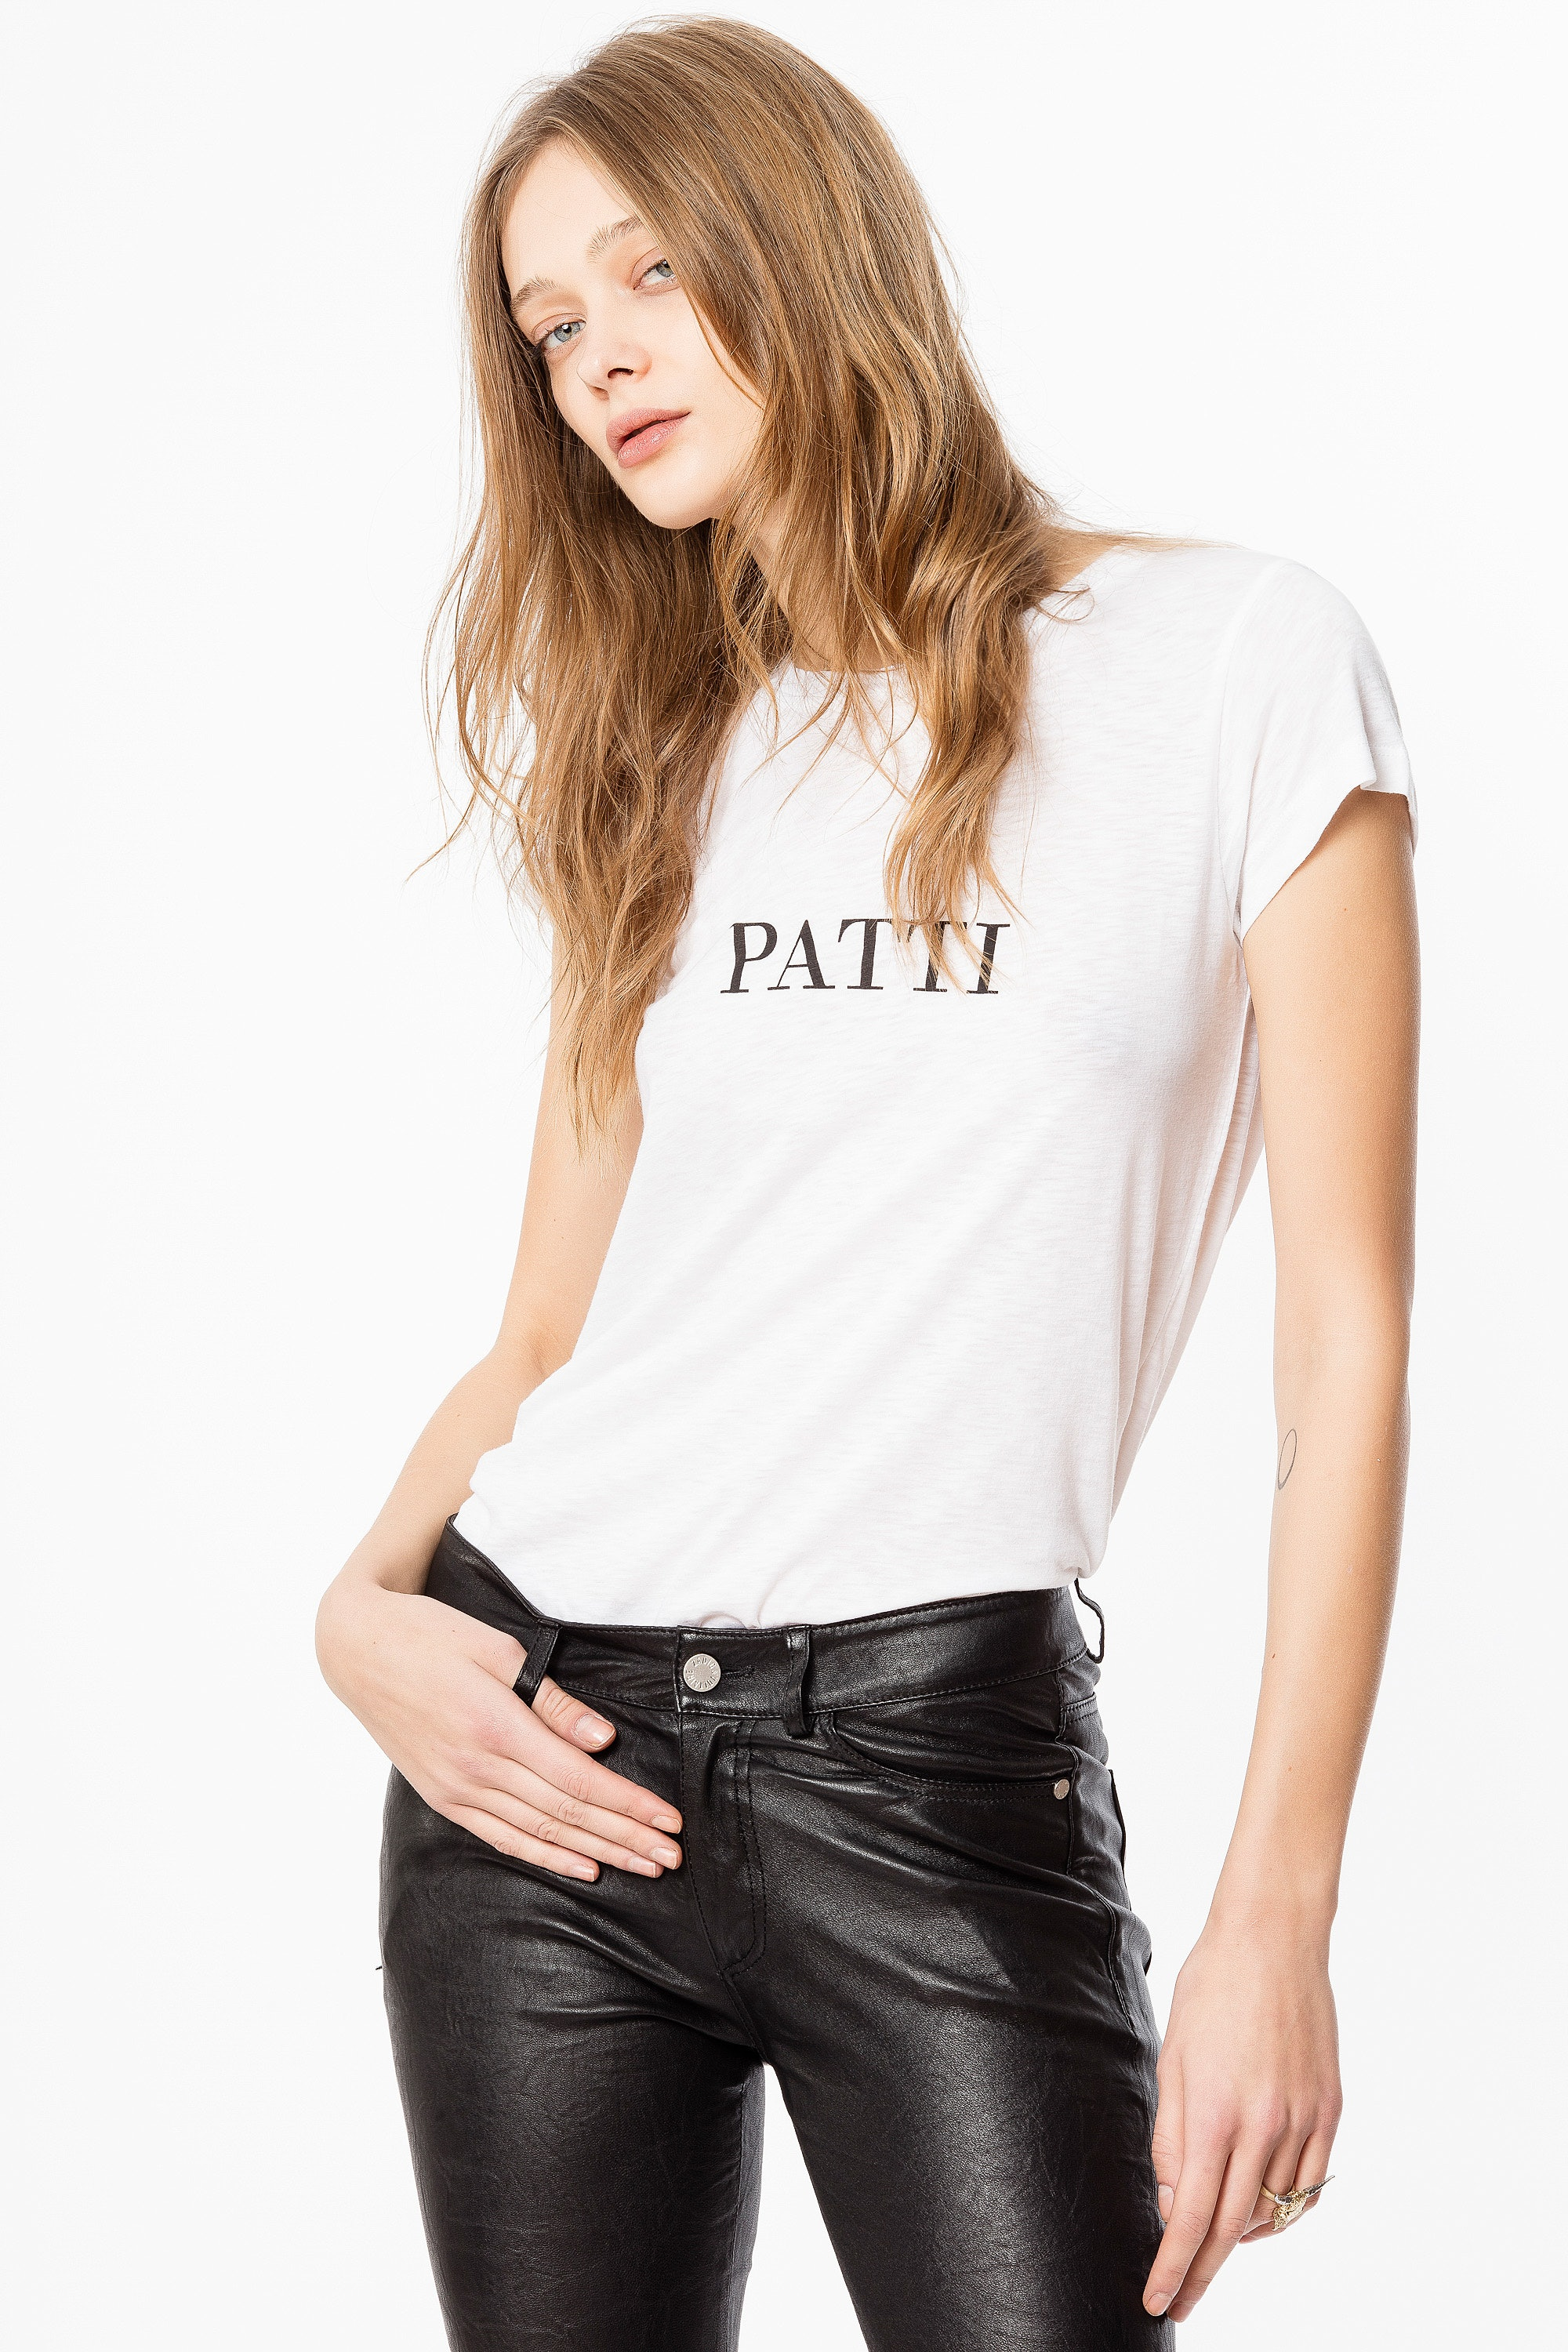 Skinny Patti T-shirt